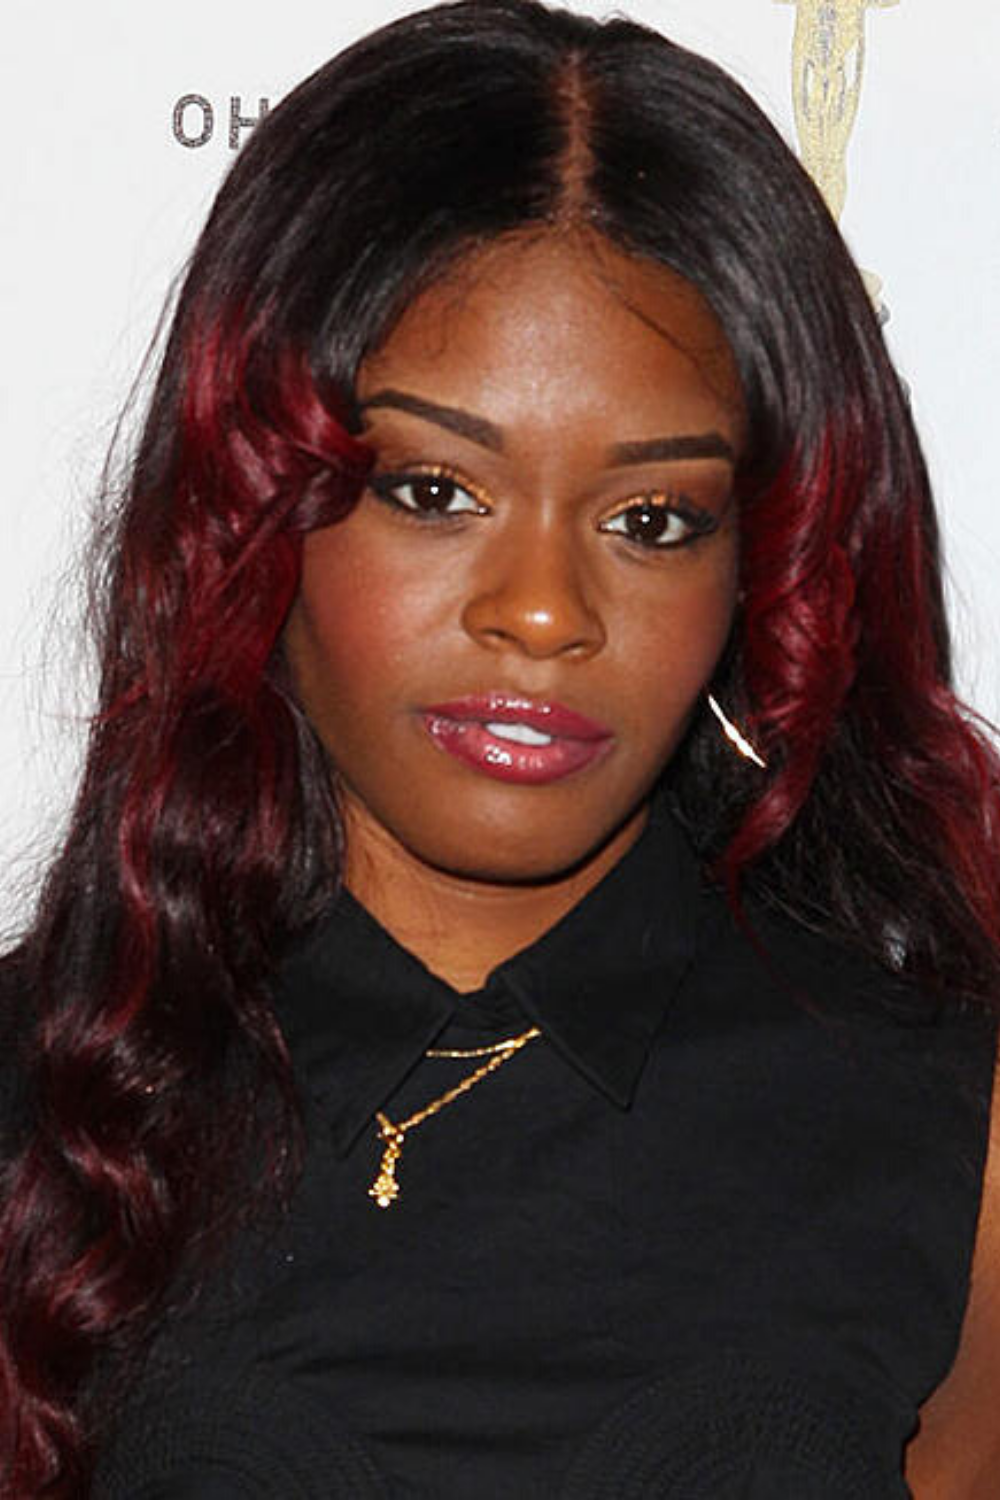 """In a series of videos posted to her Instagram account, rapper Azealia Banks admitted to practicing """"brujería"""" — the Spanish word for witchcraft. #lovewitch #witchcraft #wicca #paganism #witchyaesthetic #wiccan #wiccanspells #whichspellswork #magickspell #witchesspells #spirituality #paganismwomen #paganbeliefs #witchesspellsandpotions #paganspirituality"""